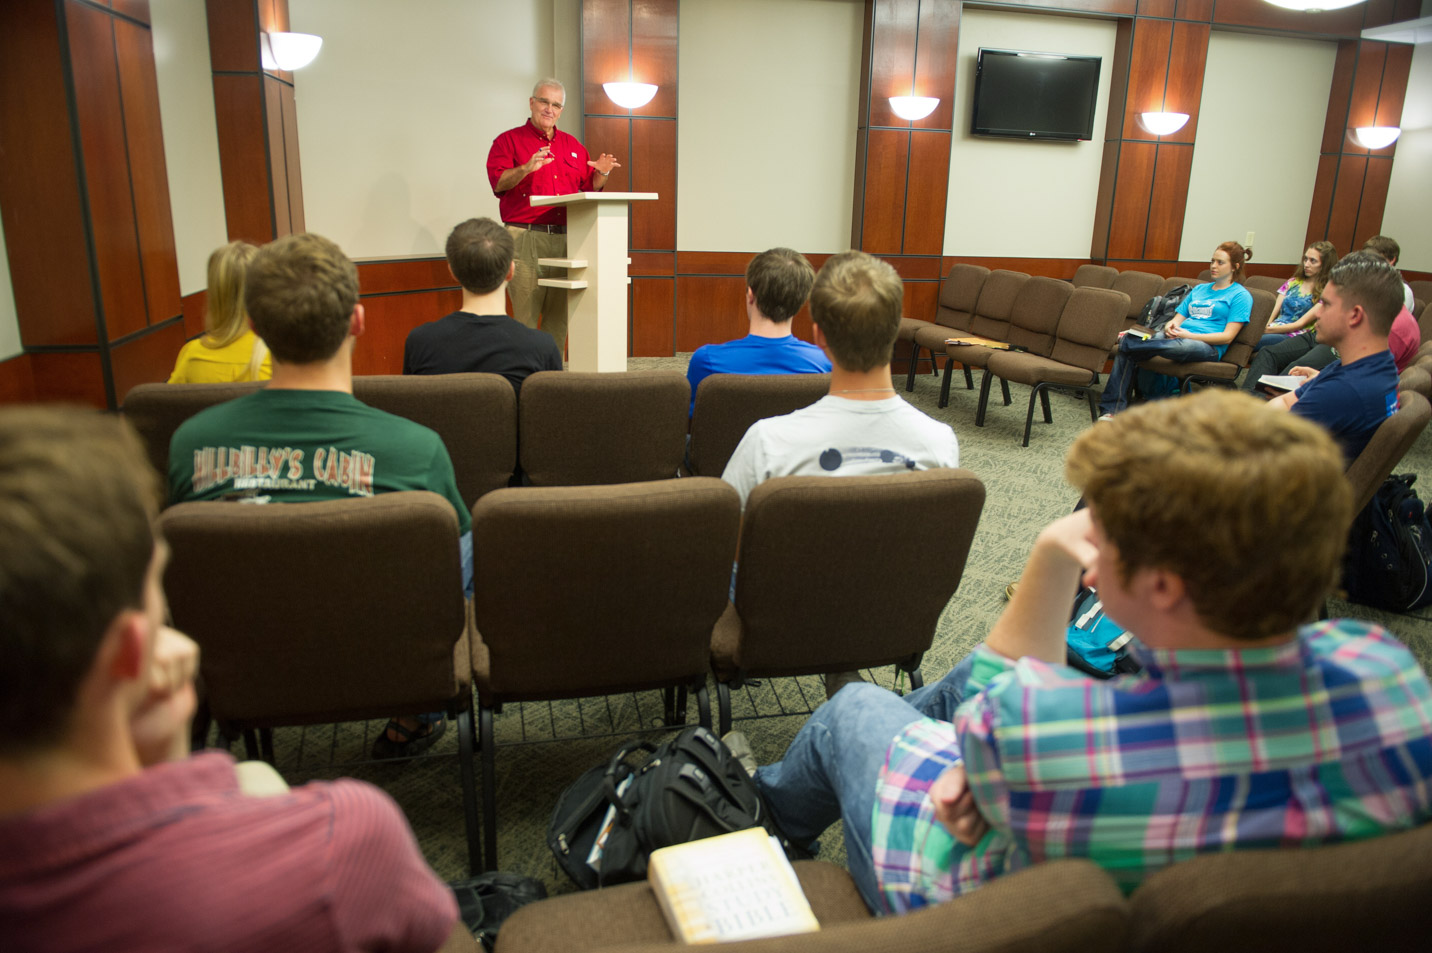 This is a photo taken in the preaching studio at Harding University.